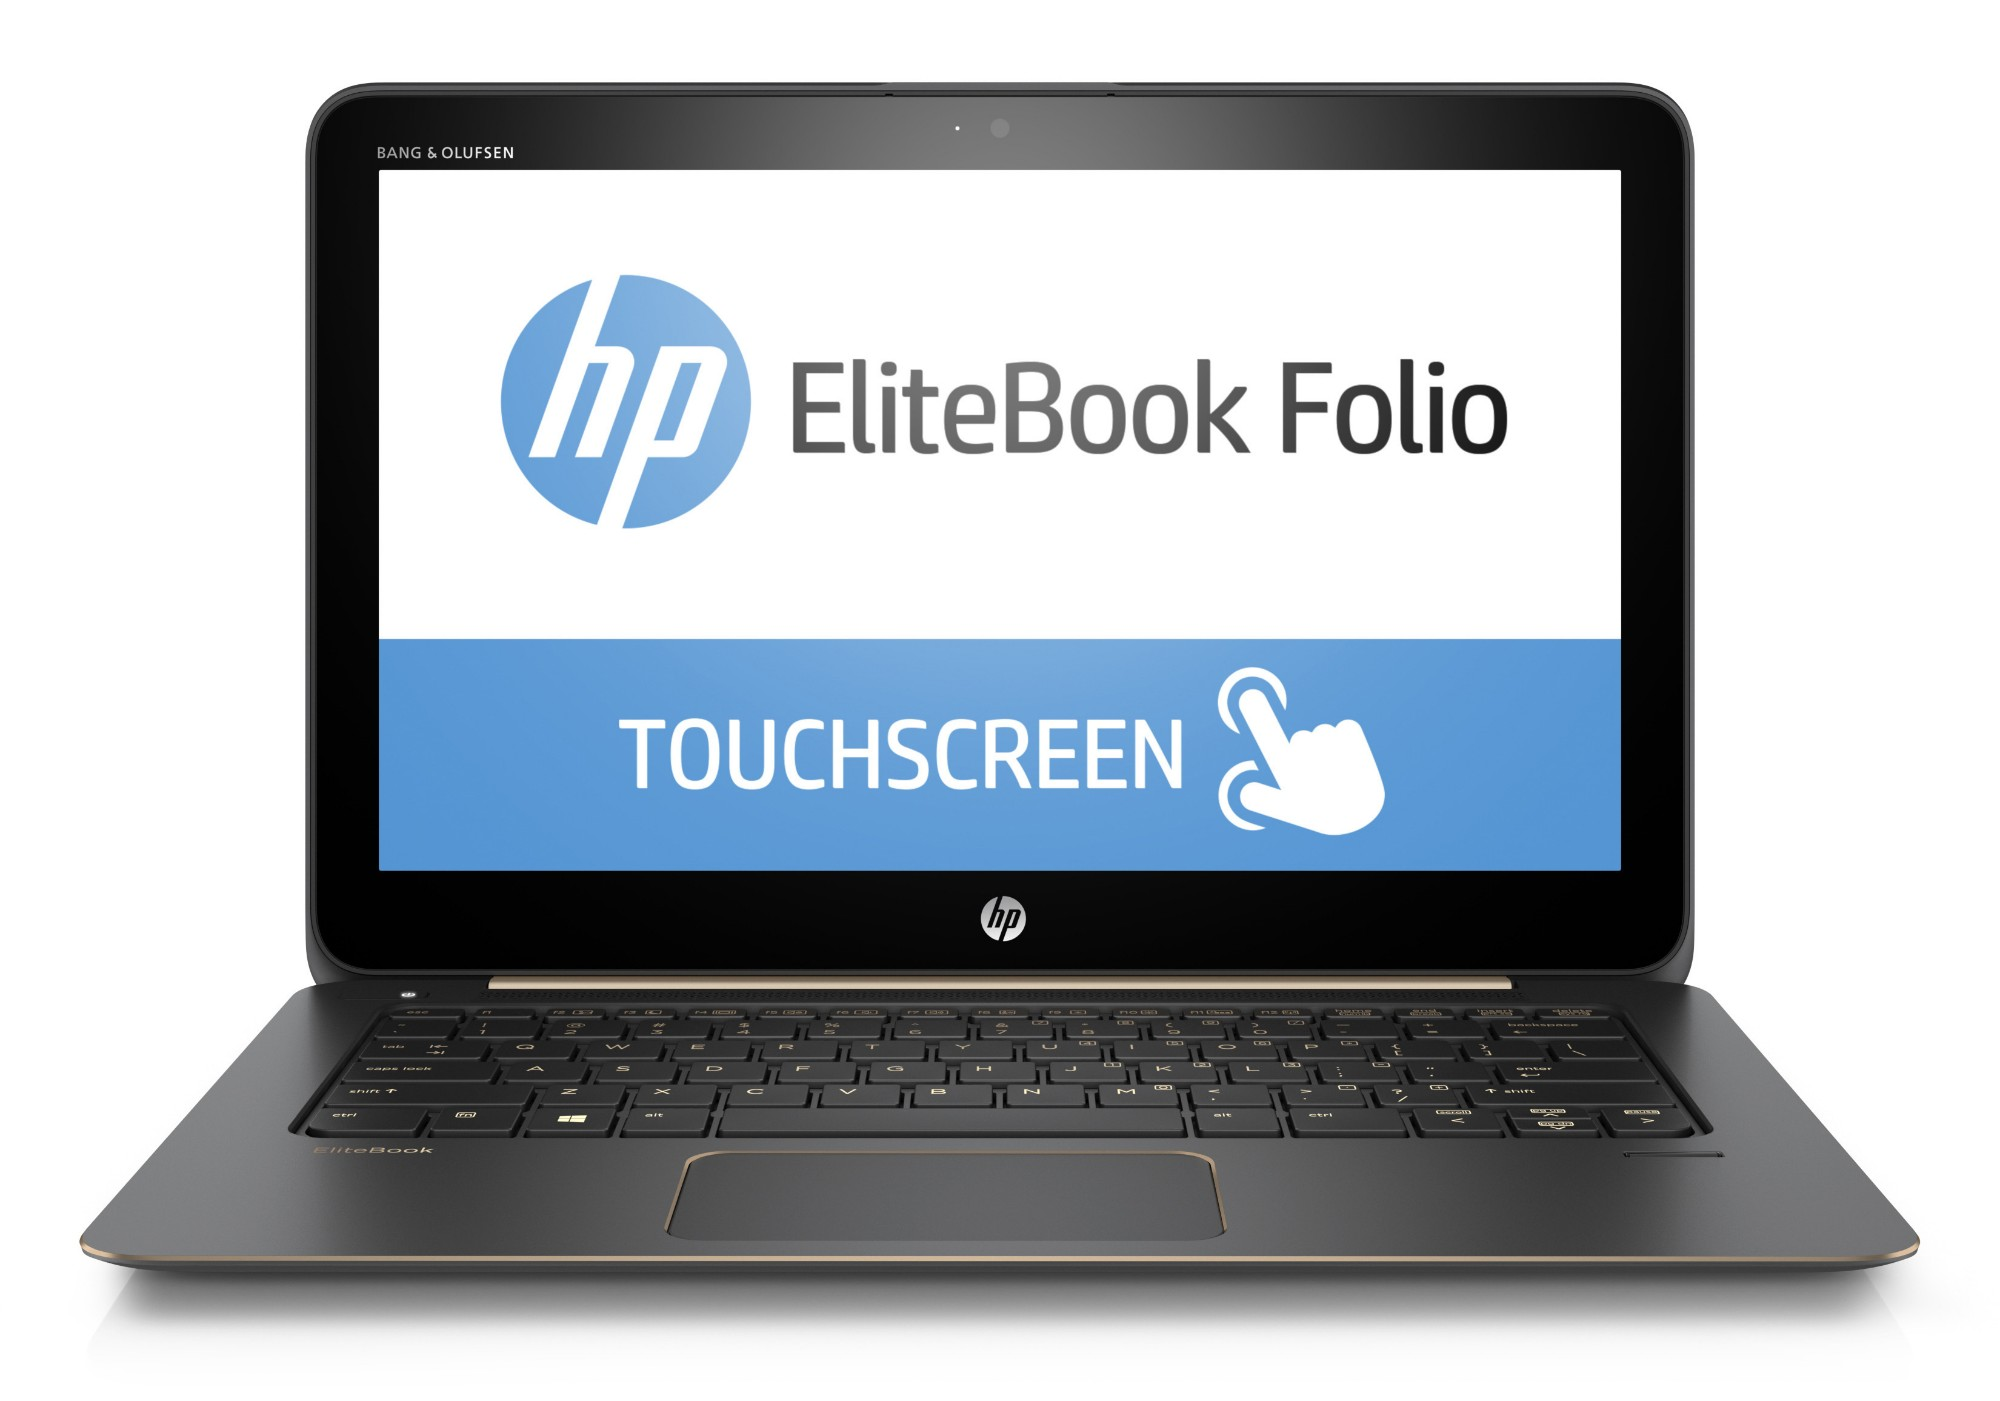 HP EliteBook Folio 1020 G1 Bang & Olufsen Limited Edition Silver Notebook 31.8 cm (12.5